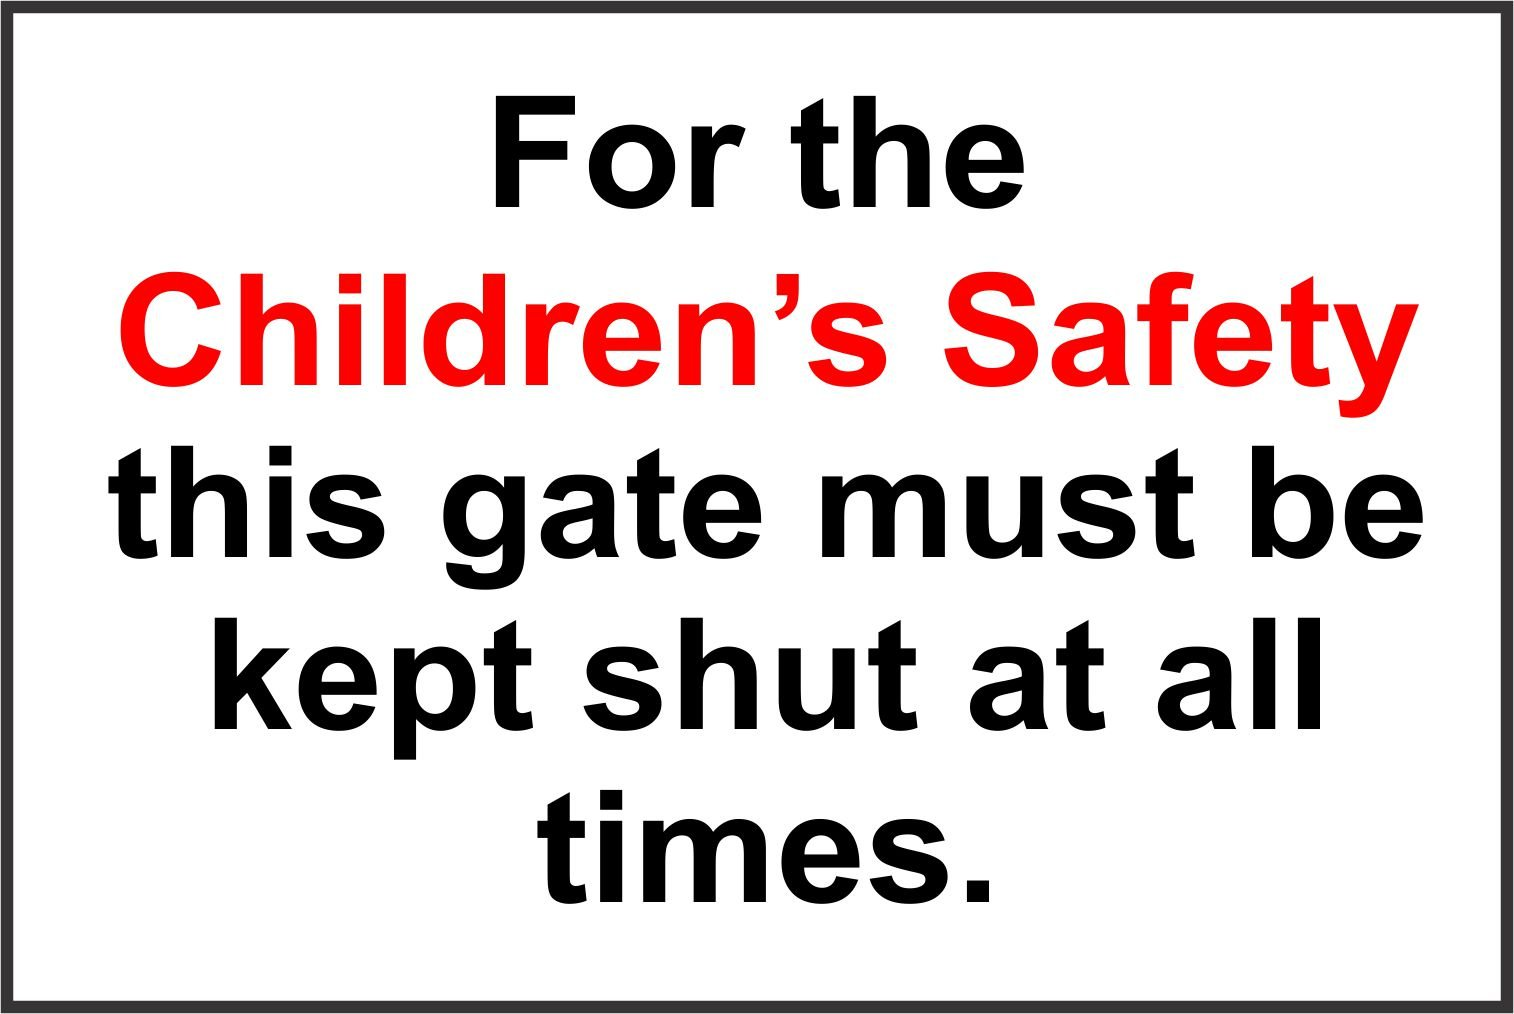 INDIGOS UG - Sticker - Safety - Warning - Set of 5 pack - For the Children's Safety this gate is locked during school hours.Please use the main entrance sign 30x20cm - Decal for Office, Company